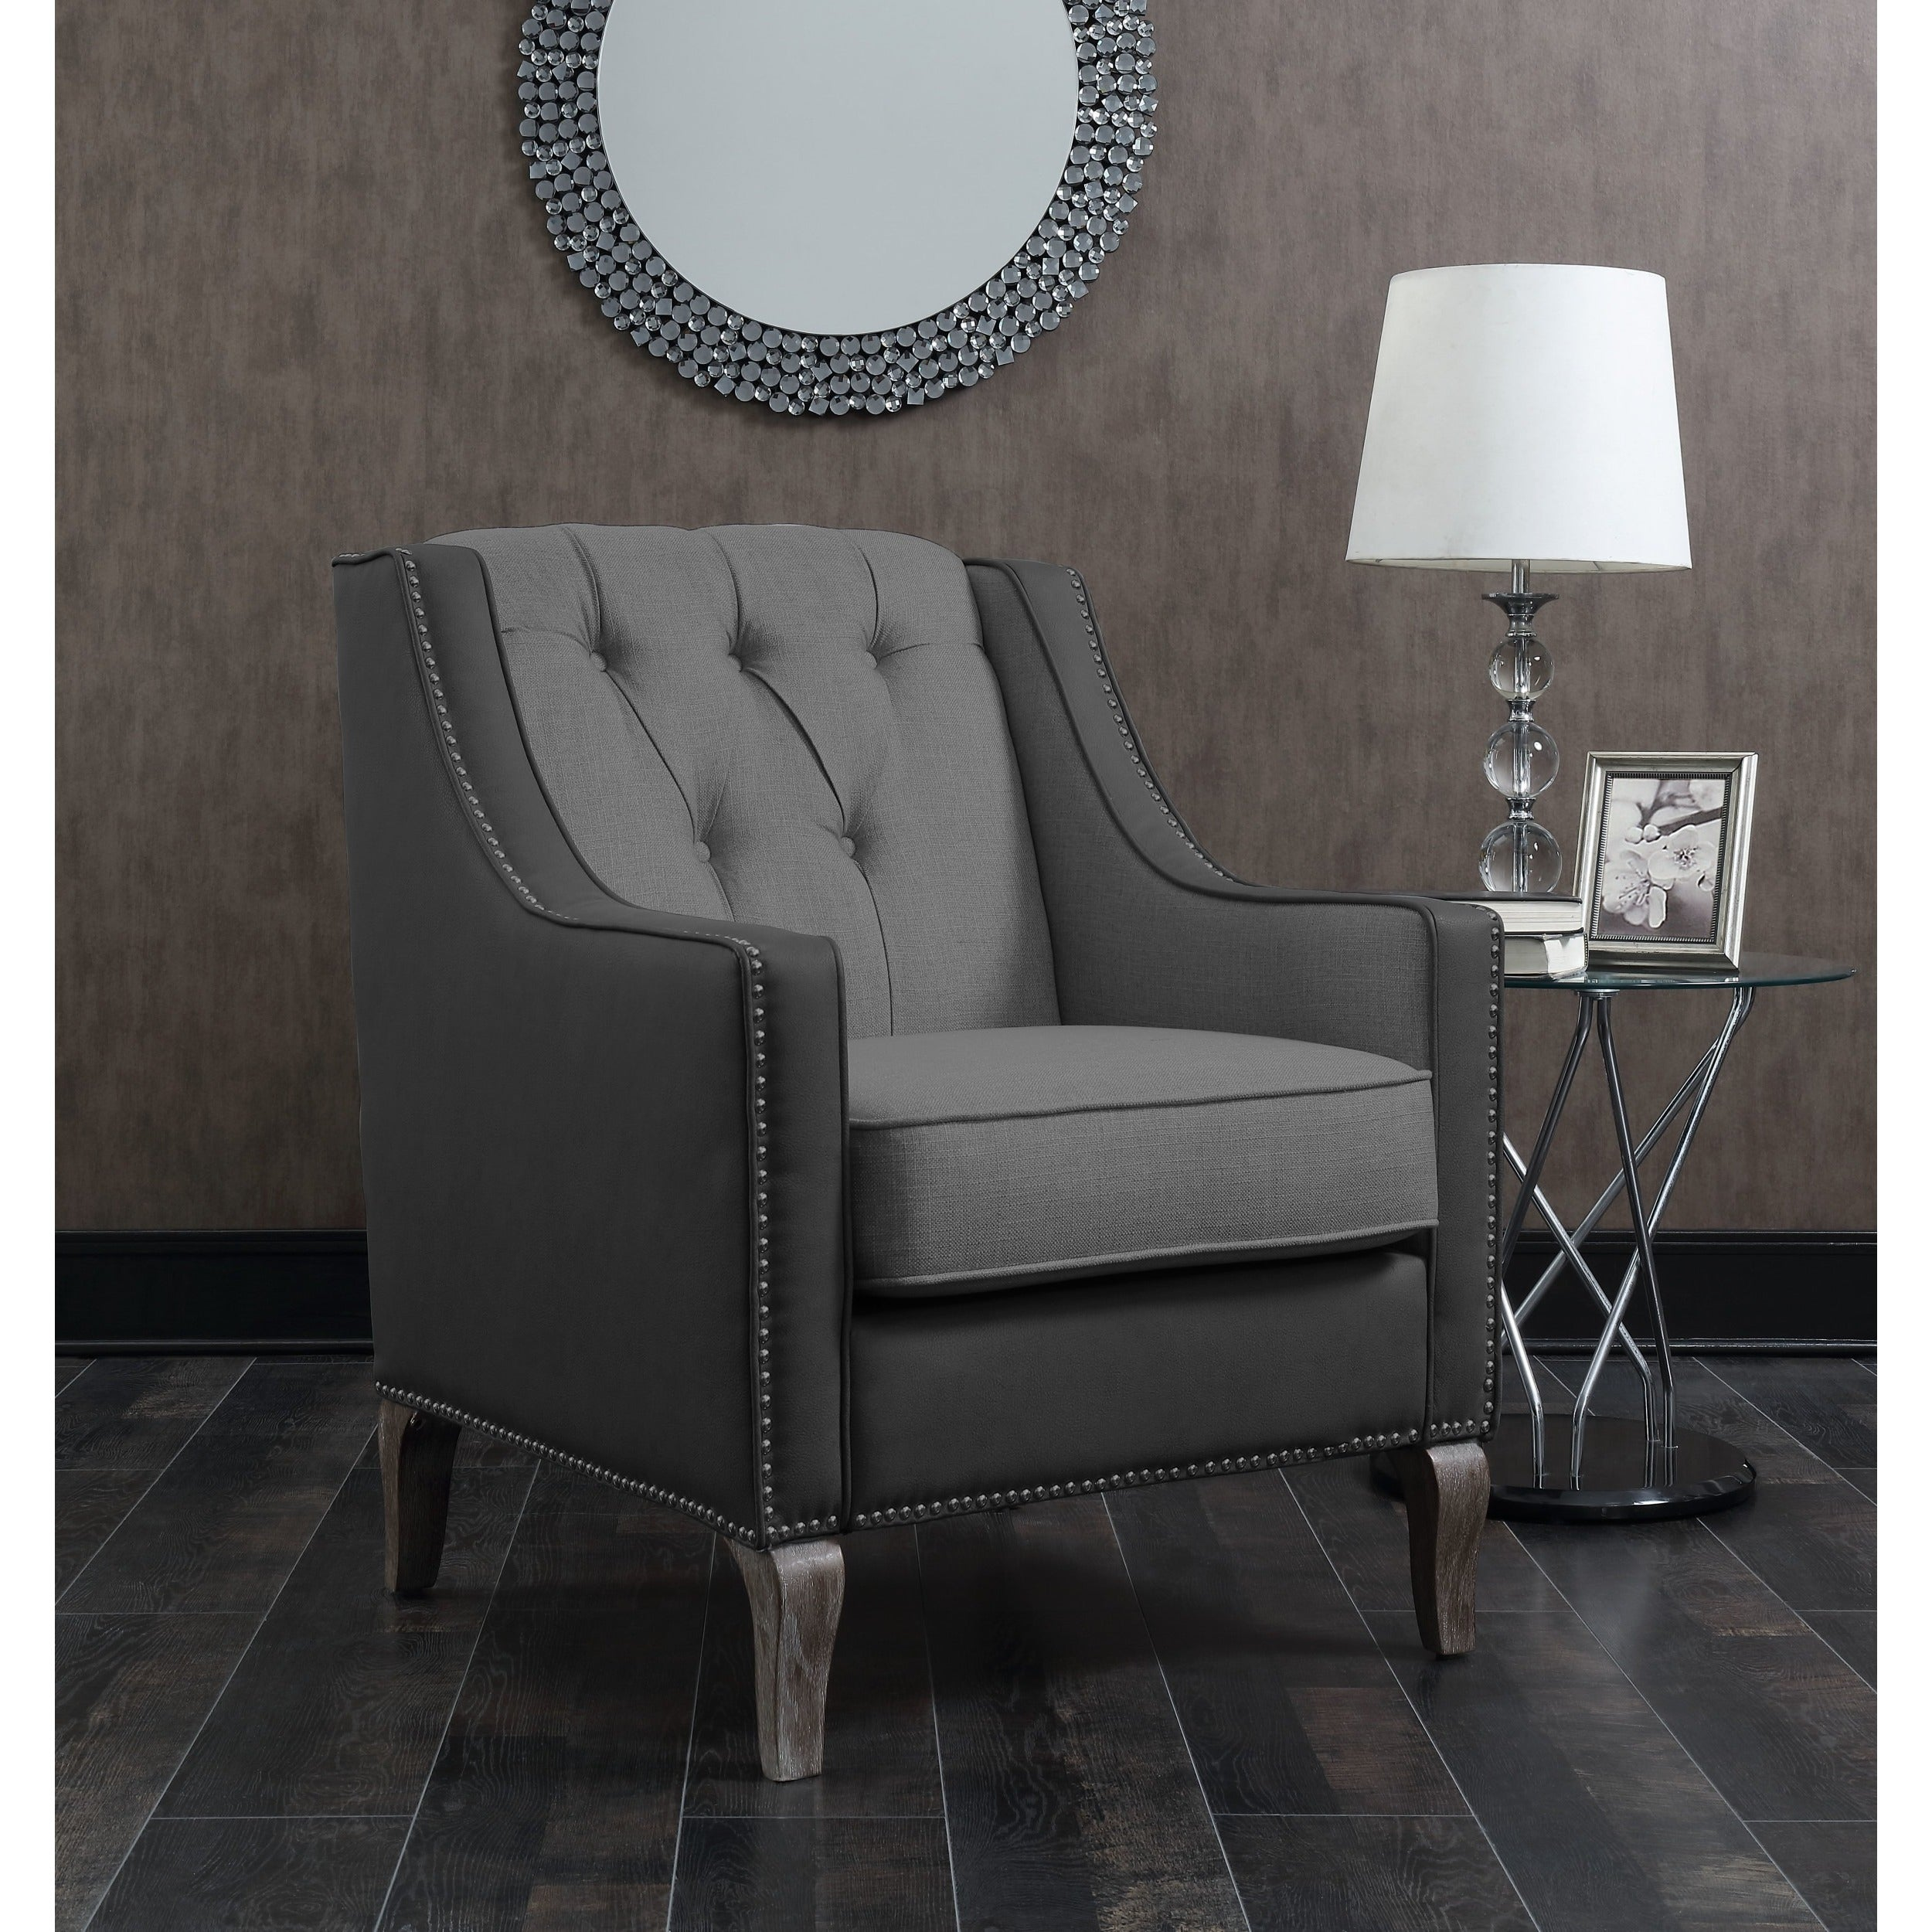 Chic Home Kris Mixed Material Linen Leatherette Nailhead